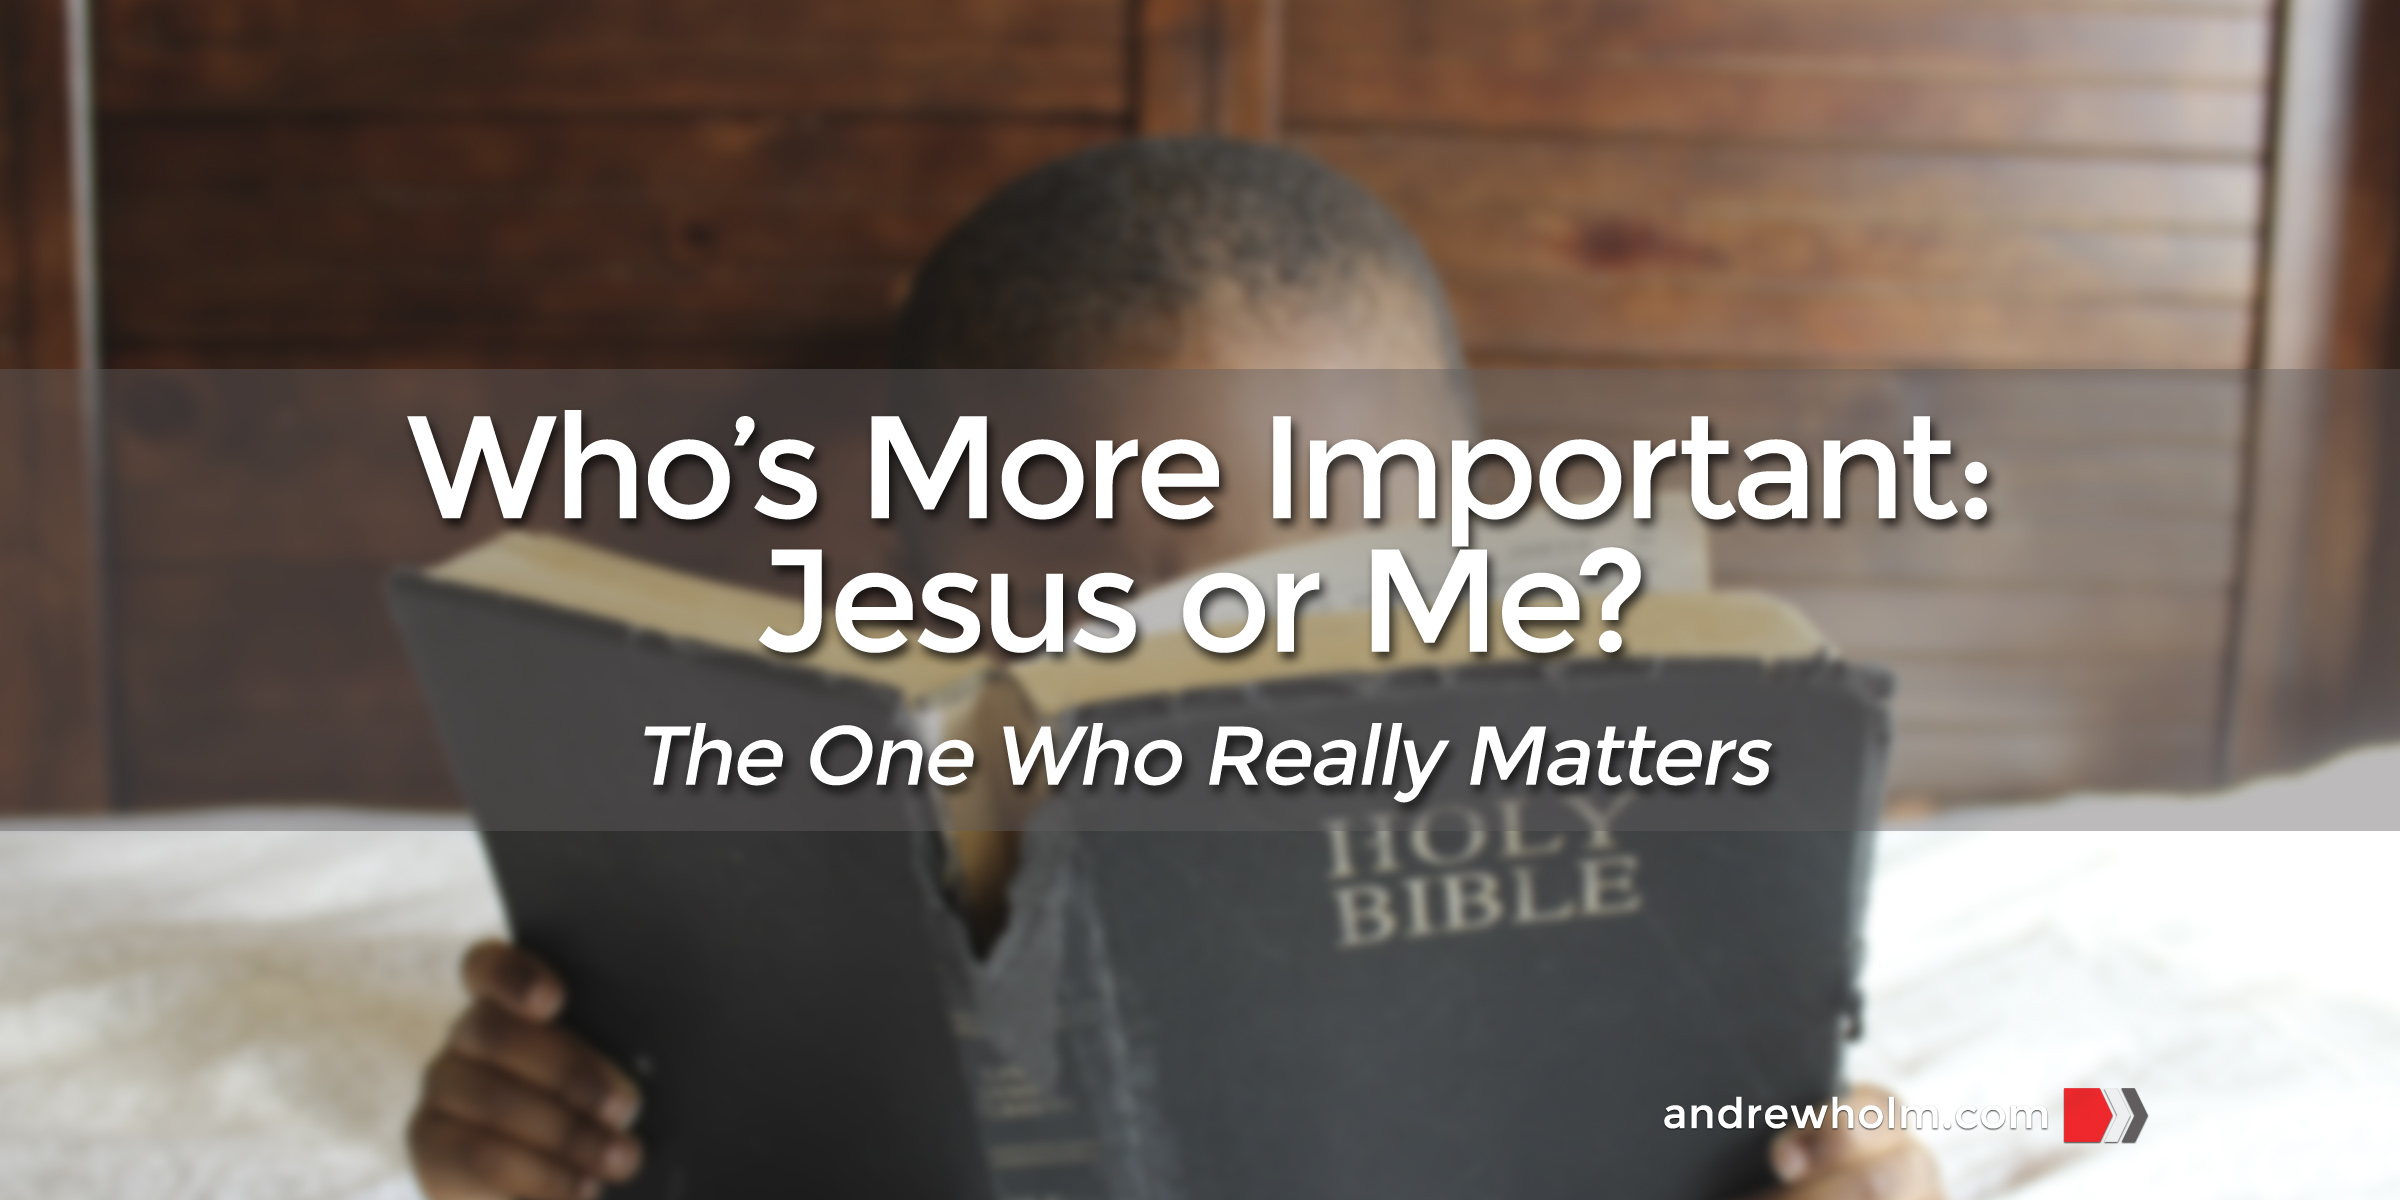 Who's More Important - Jesus or Me